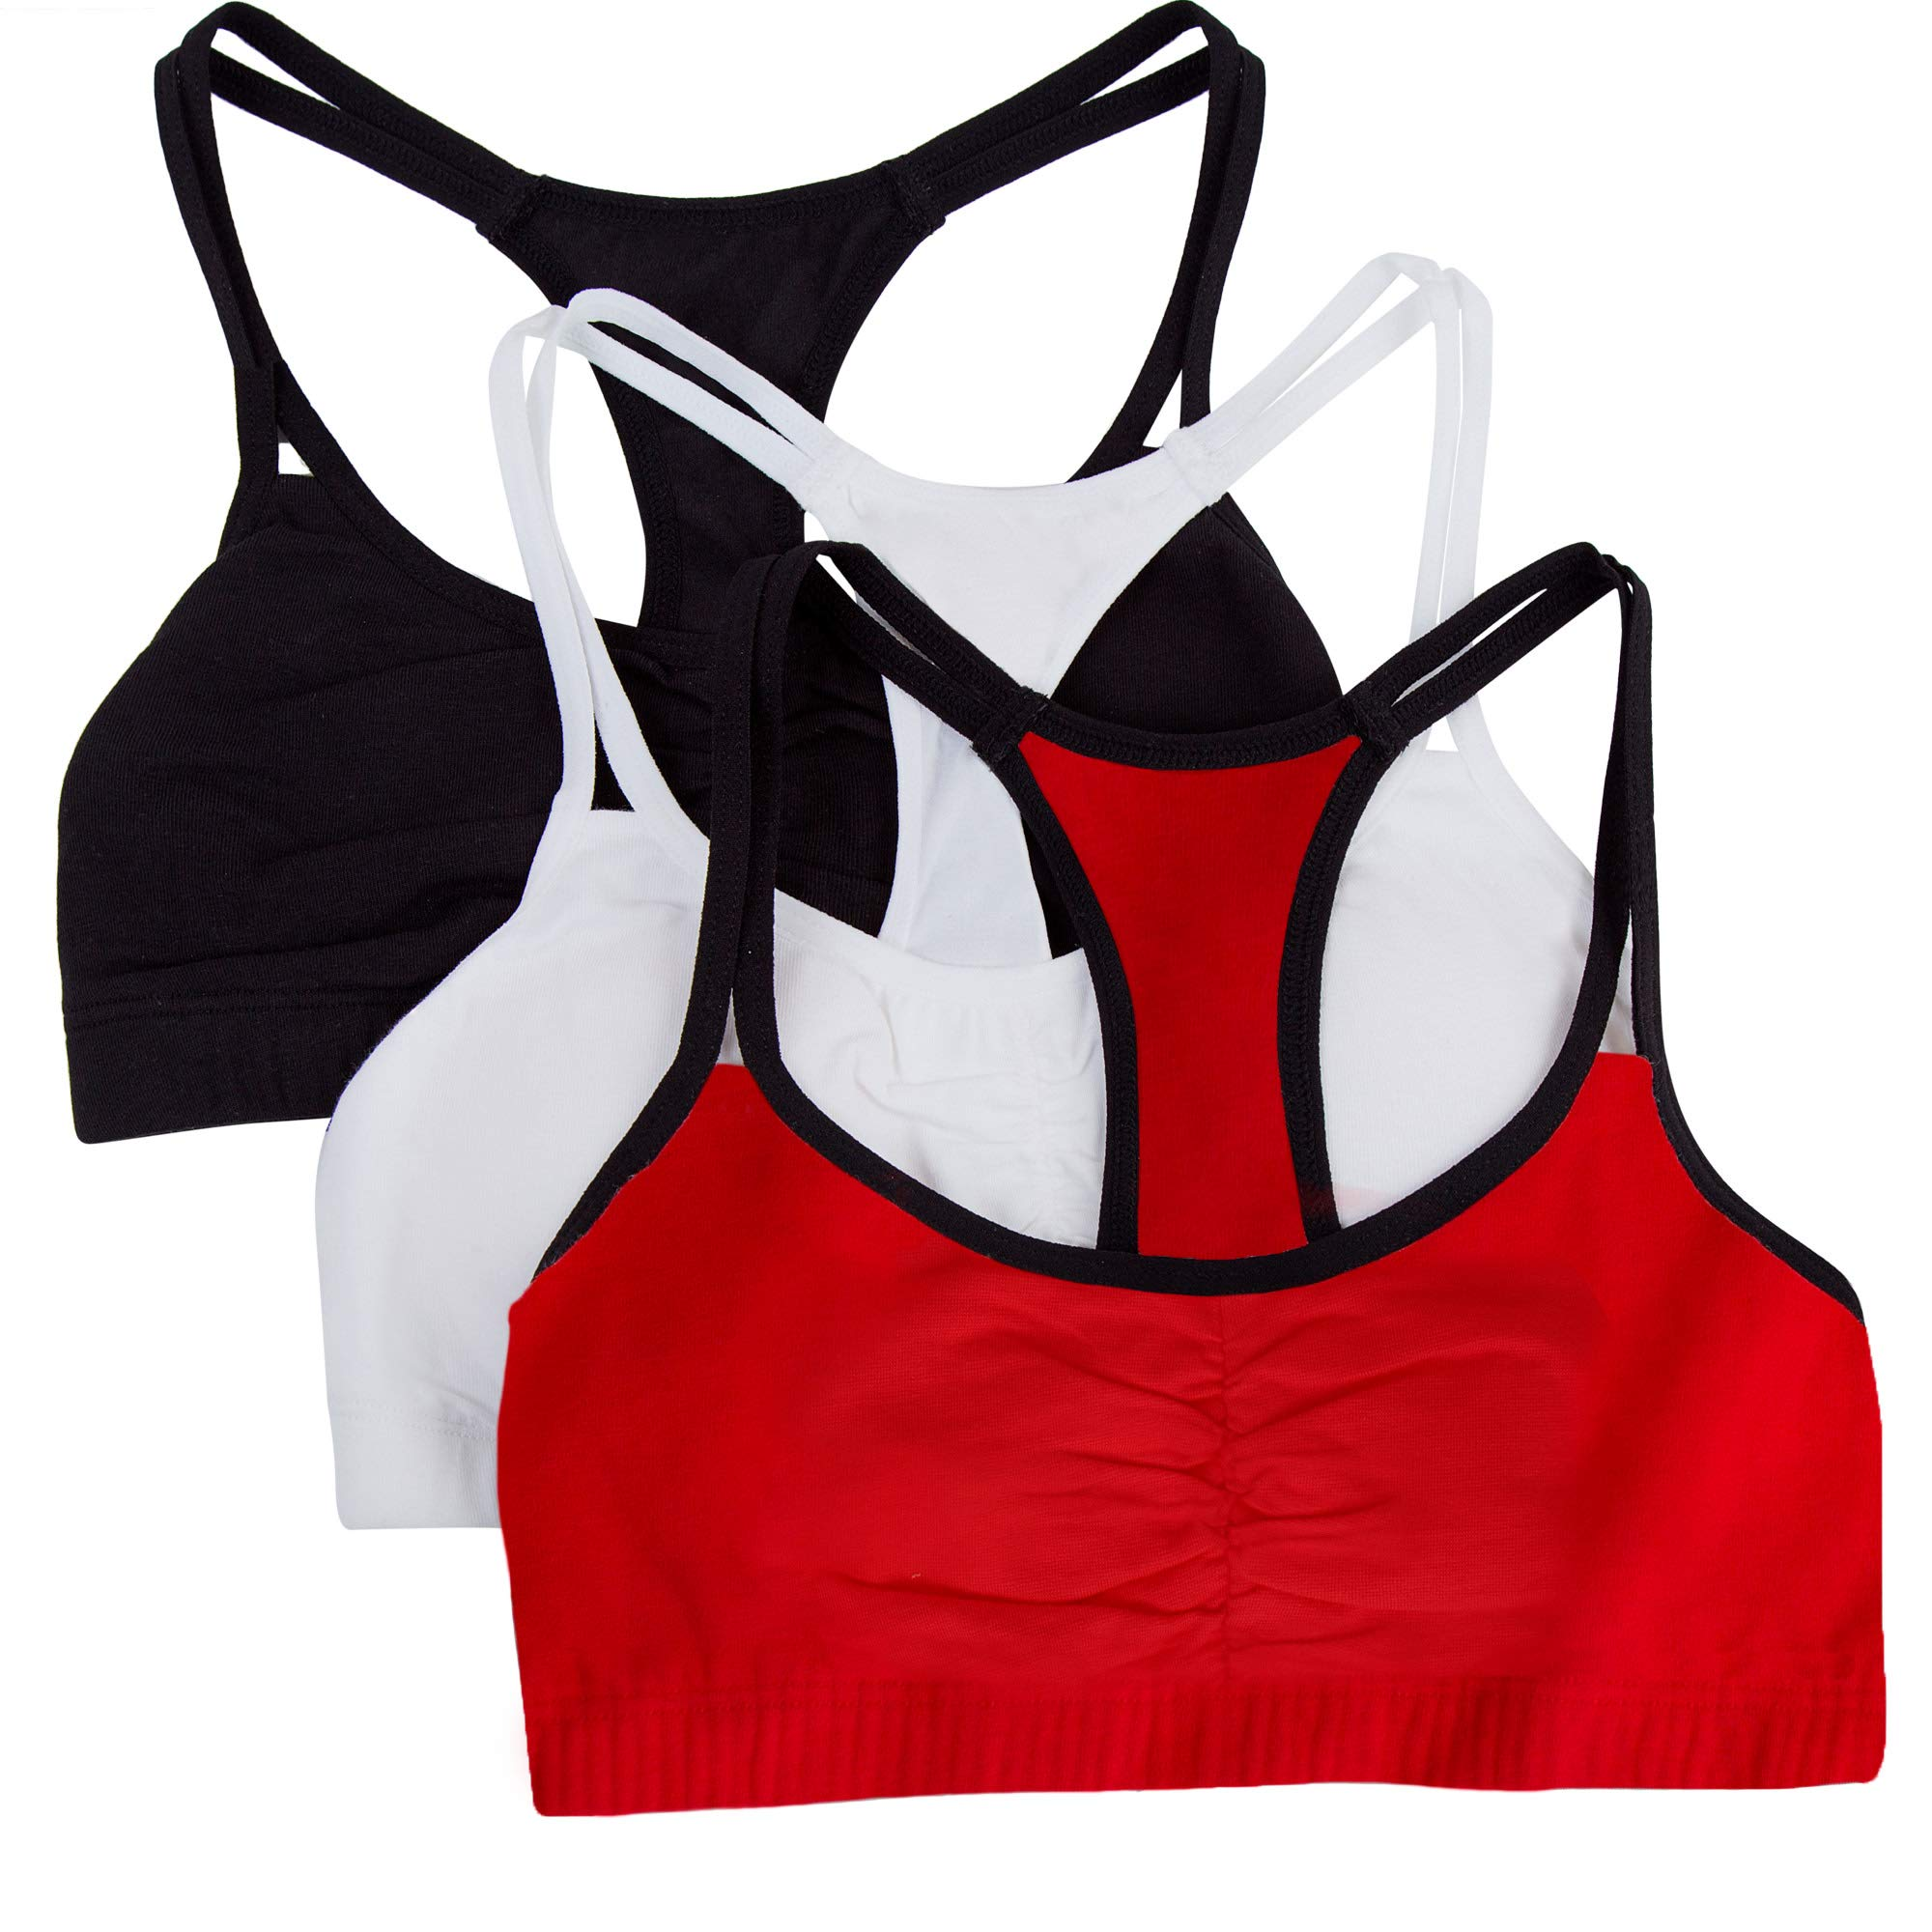 Fruit of the Loom Women's Cotton Pullover Sport Bra (Pack of 3) Bra, Red Hot with Black/White/Black, 32